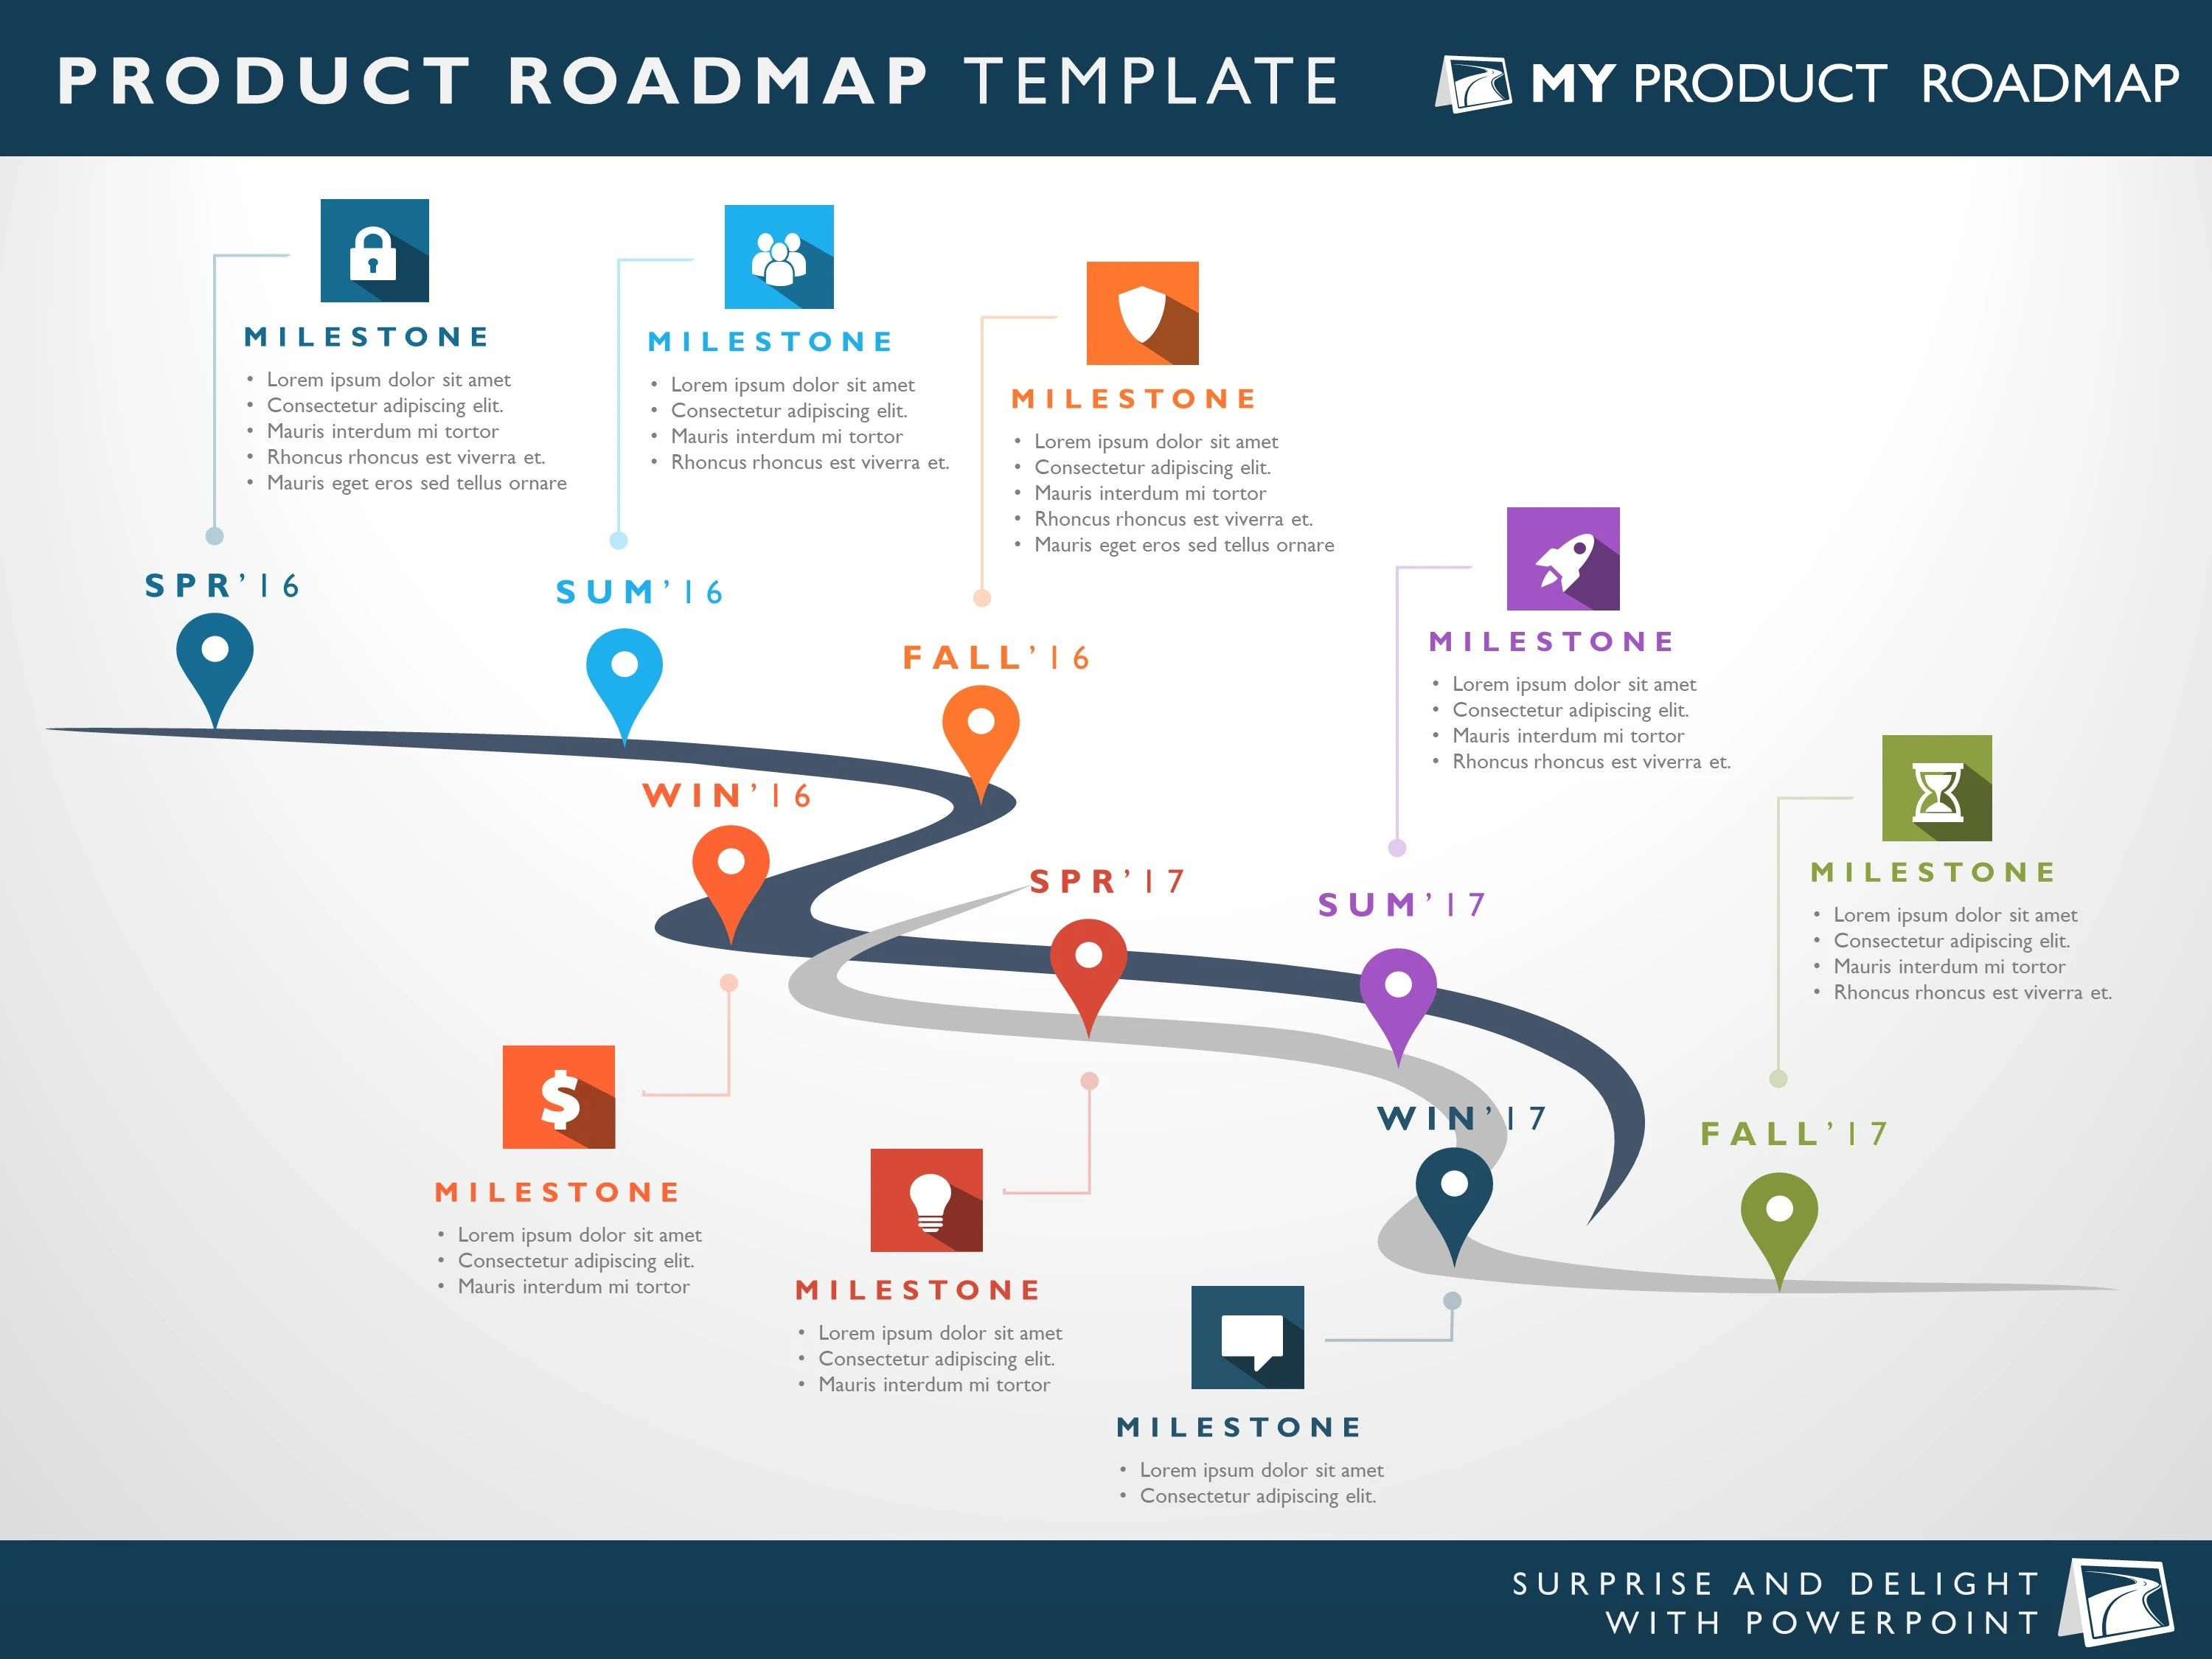 007 Top Road Map Template Powerpoint Highest Quality  Roadmap Ppt Free Download ProductFull